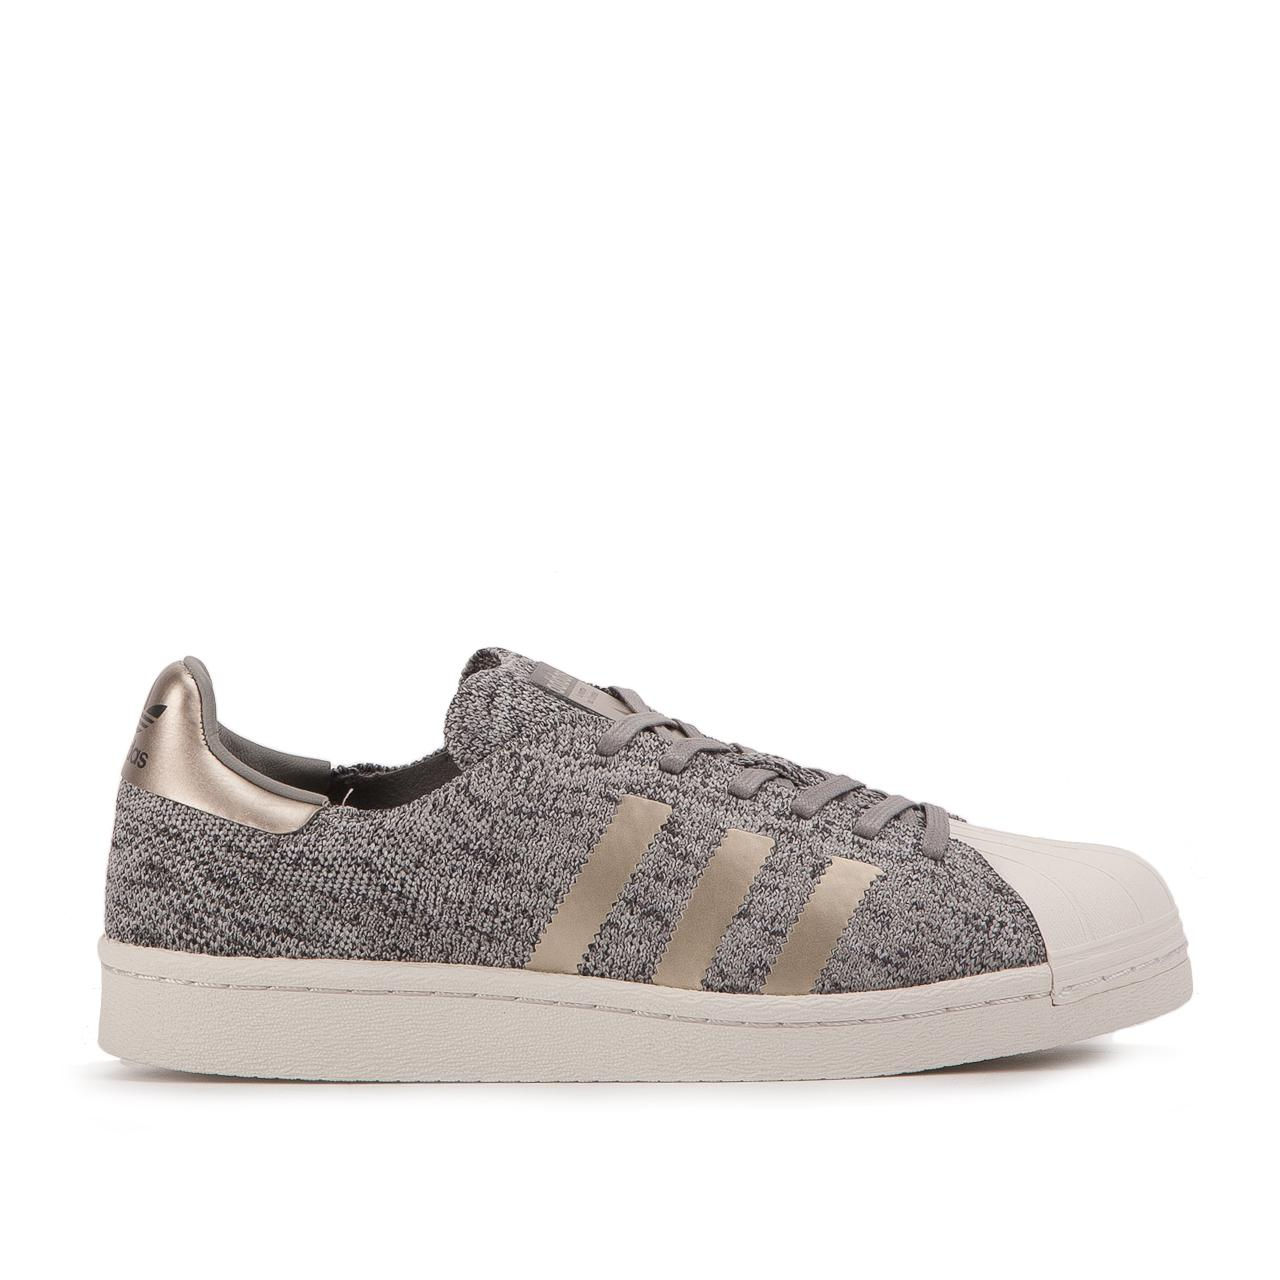 adidas Rubber Superstar Pk Nm in Grey (Gray) - Lyst